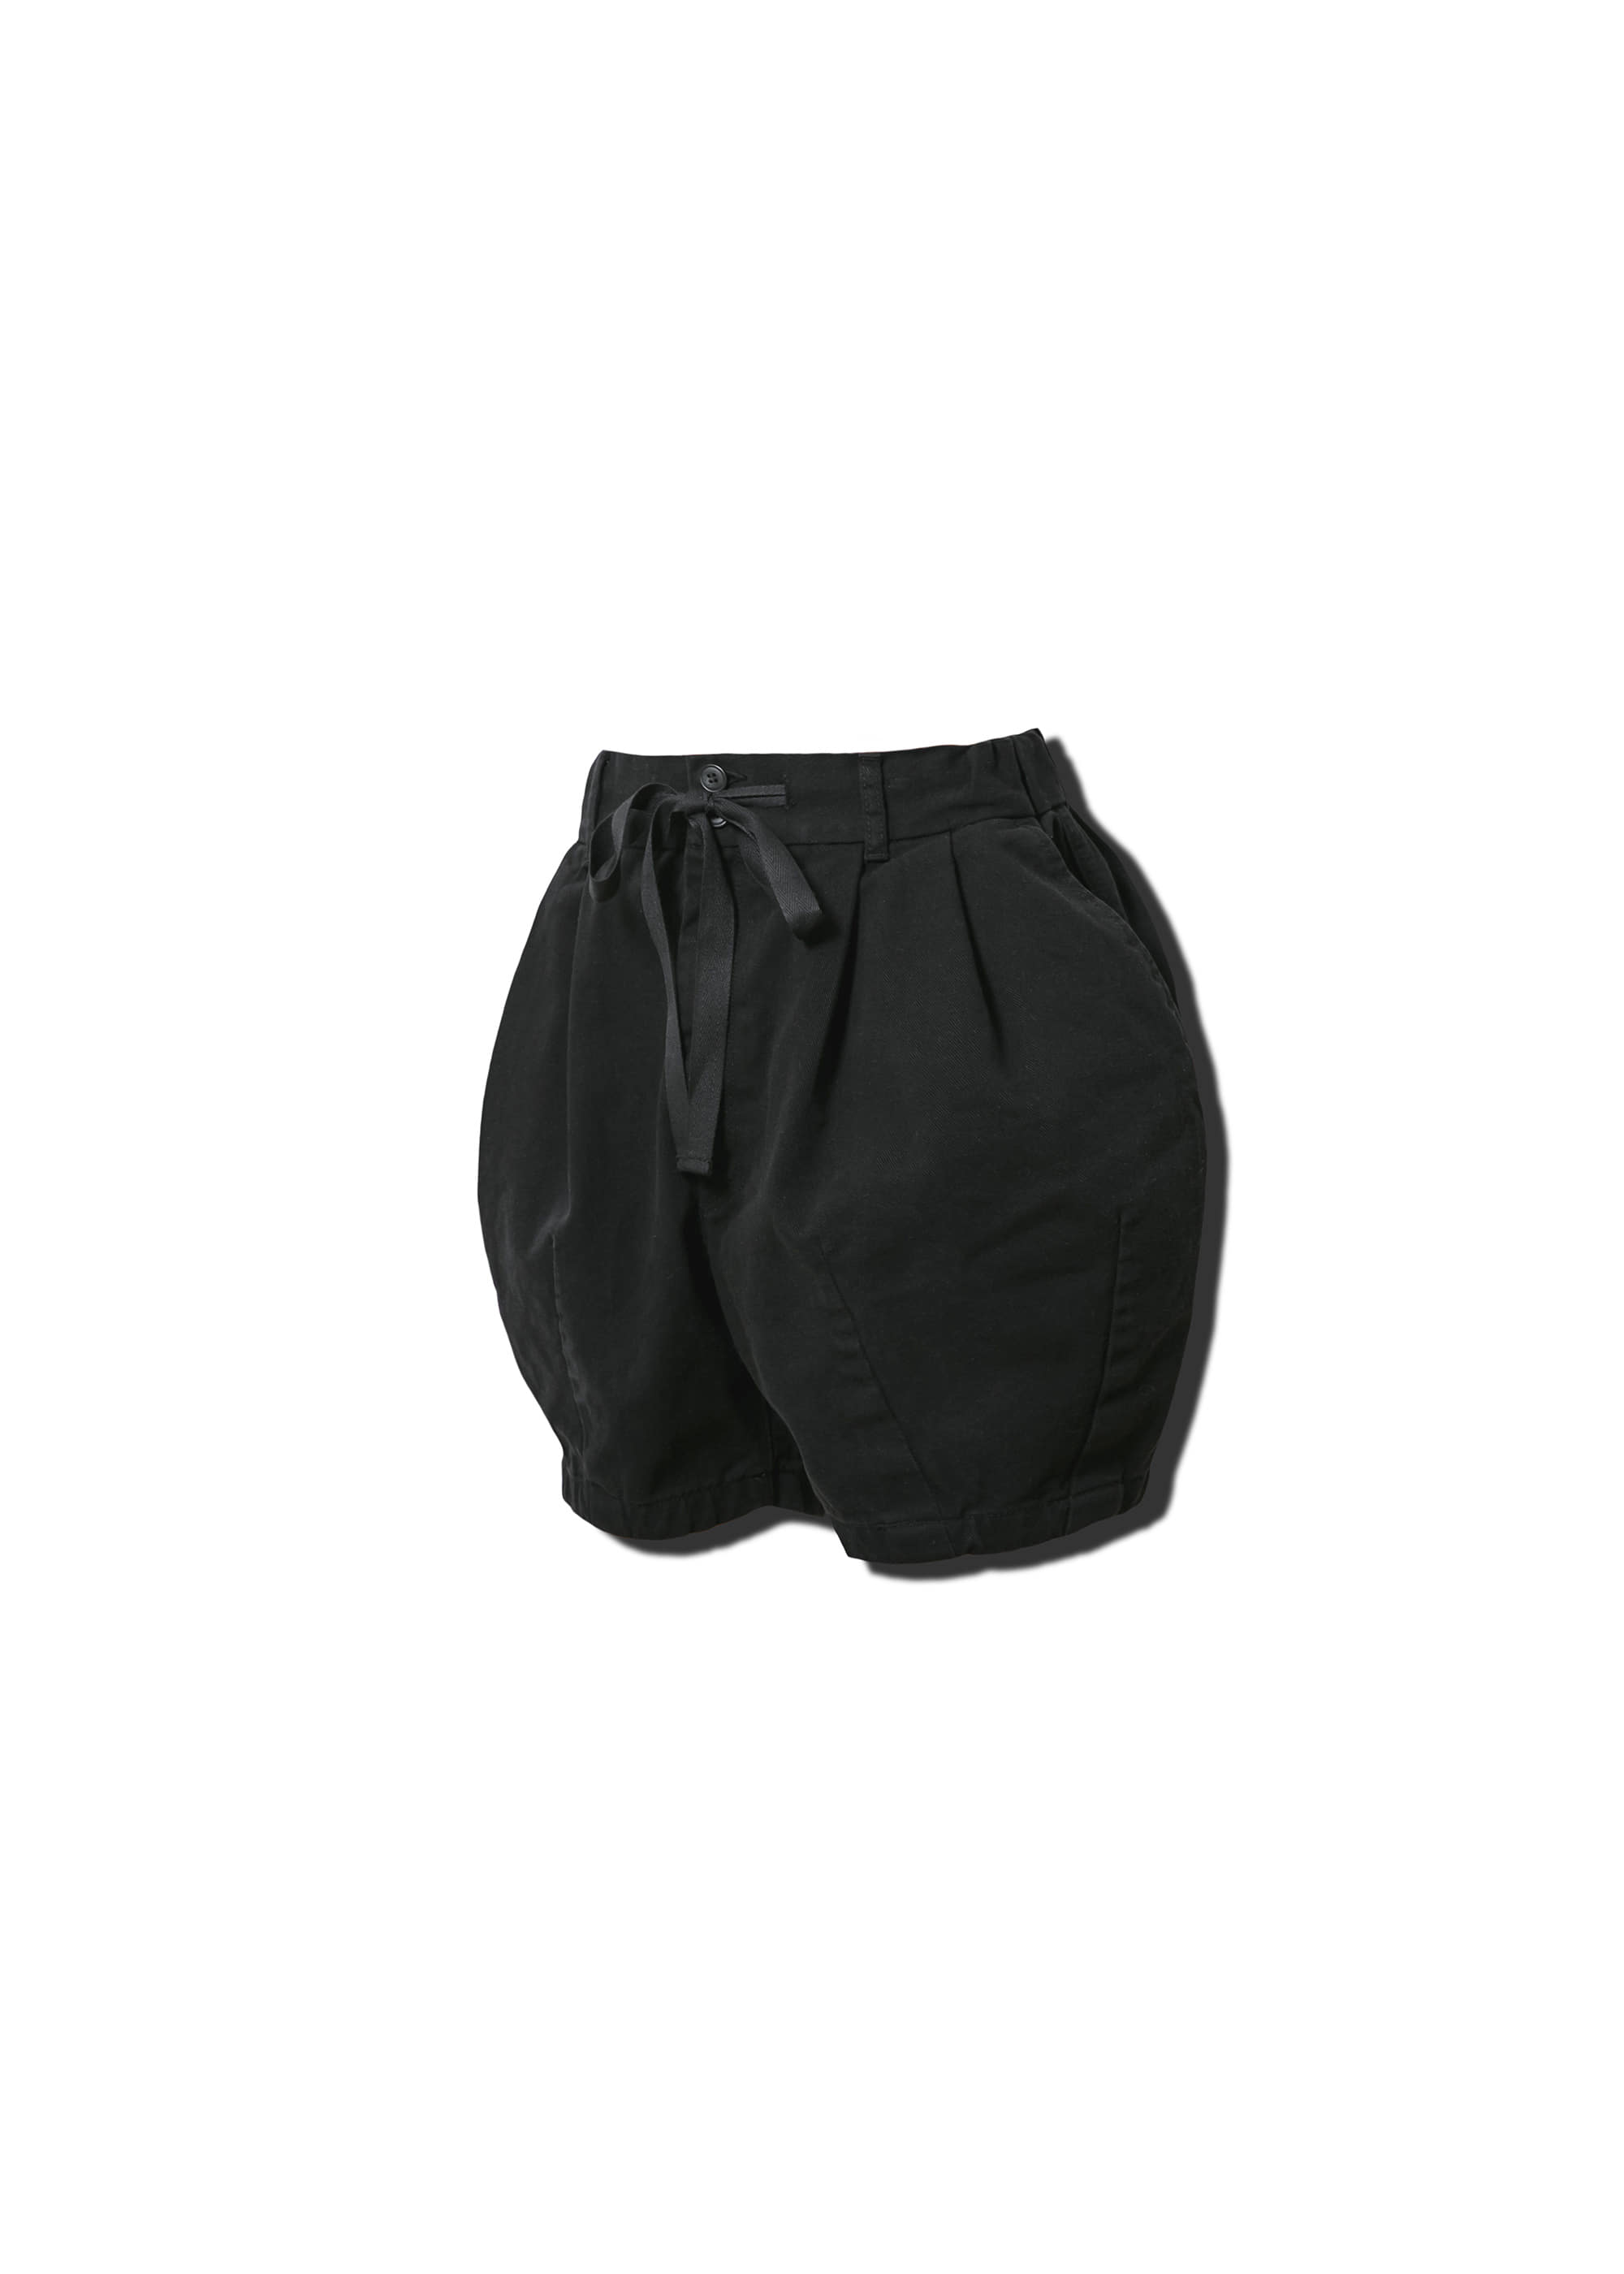 [AG] Cotton Easy Balloon Shorts - Black